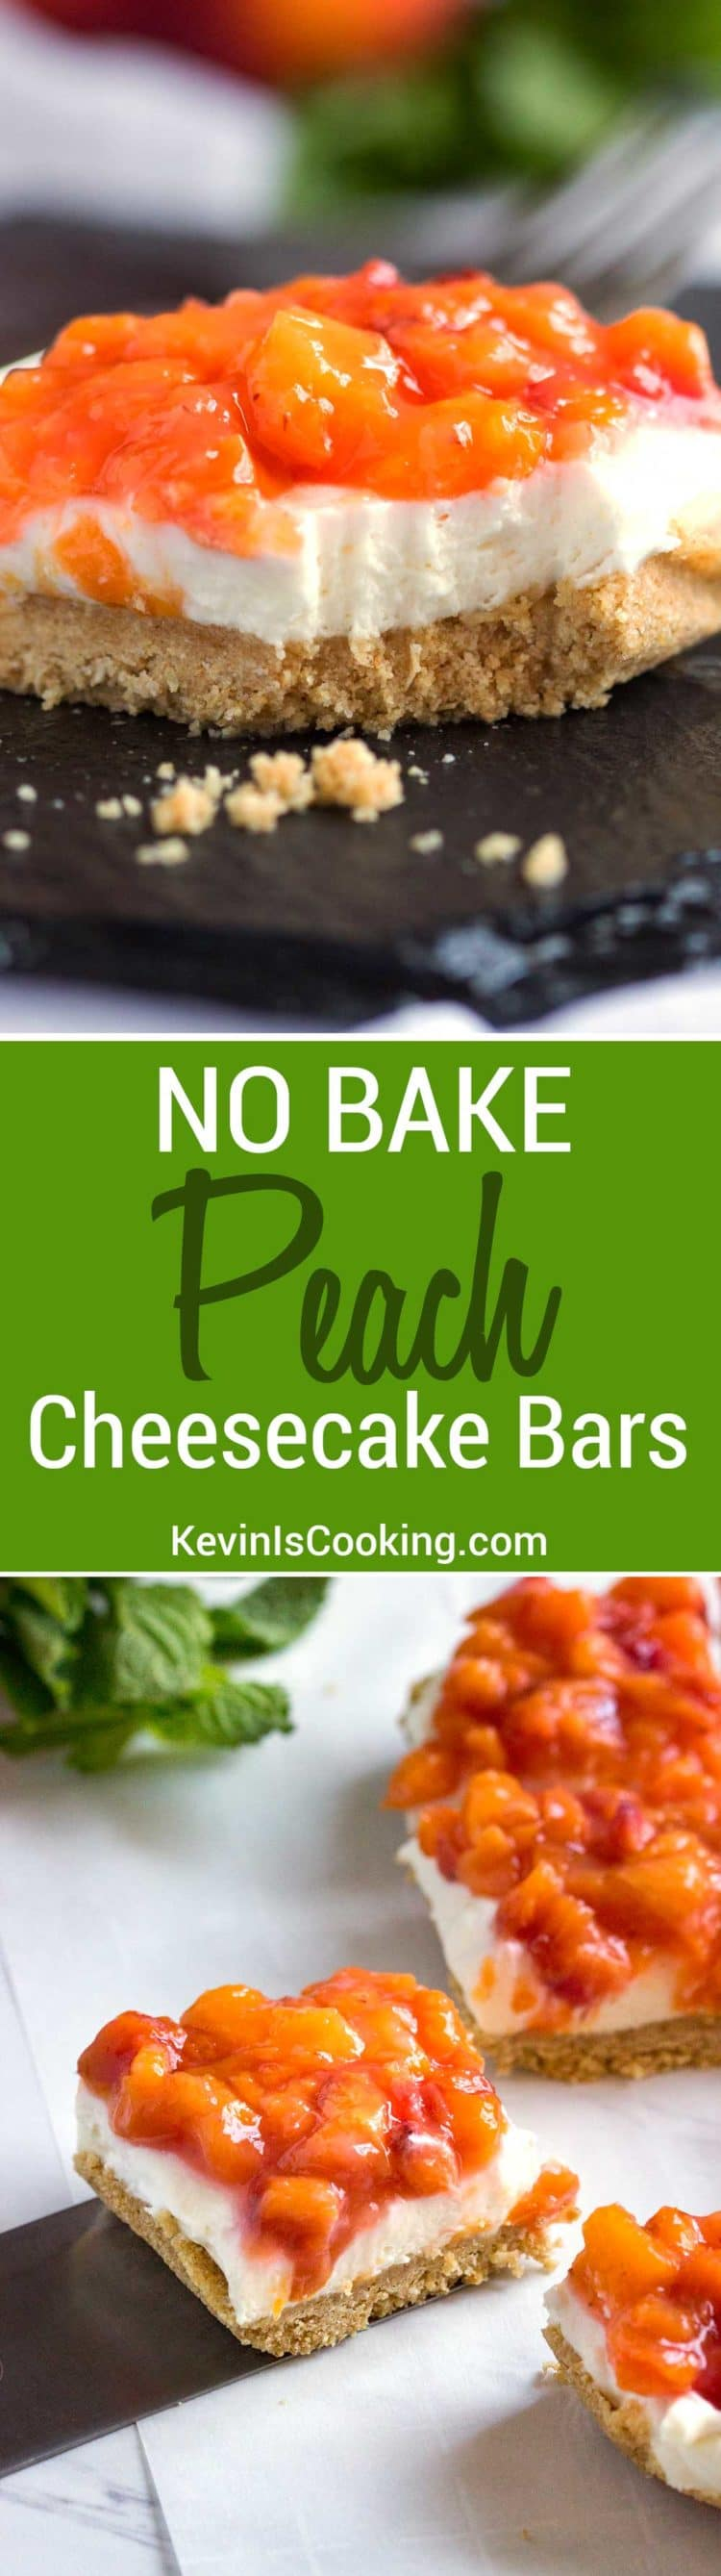 Fresh peaches top this amazingly fluffy no bake cheesecake bar with a ground oat an graham cracker base. So good! Double this, they go quick every time.